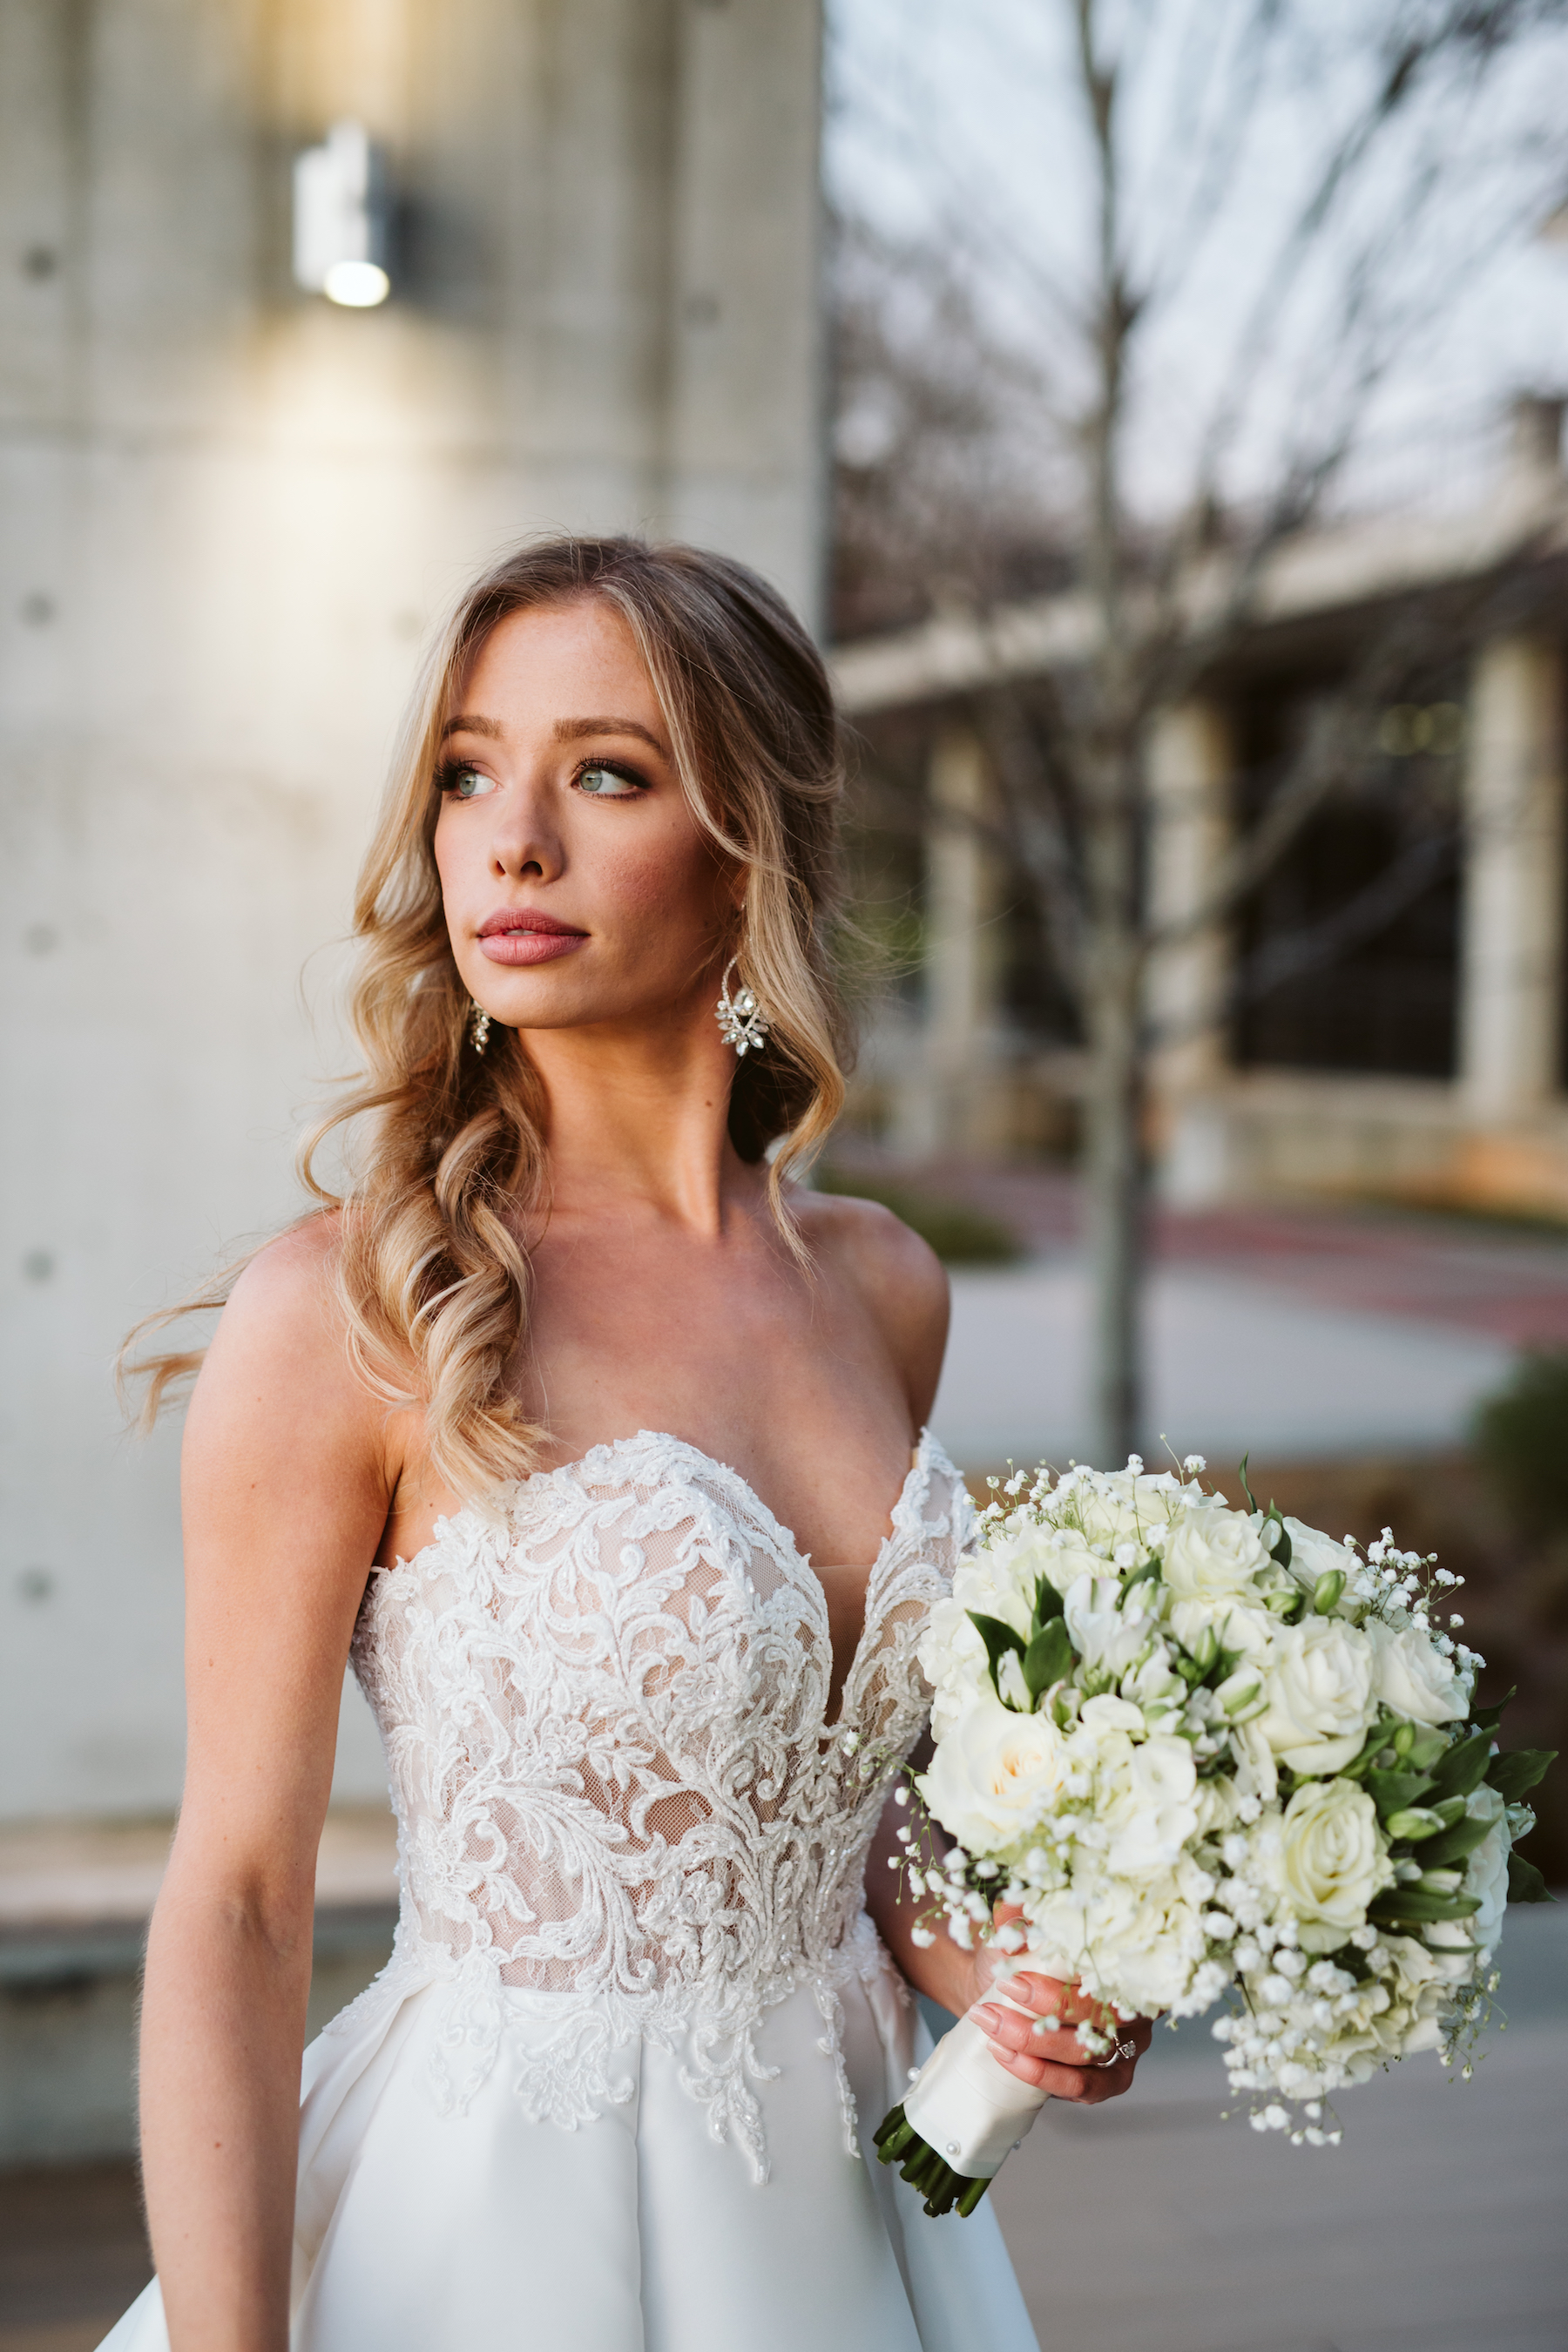 furman-university-bridals-paige-223.JPG